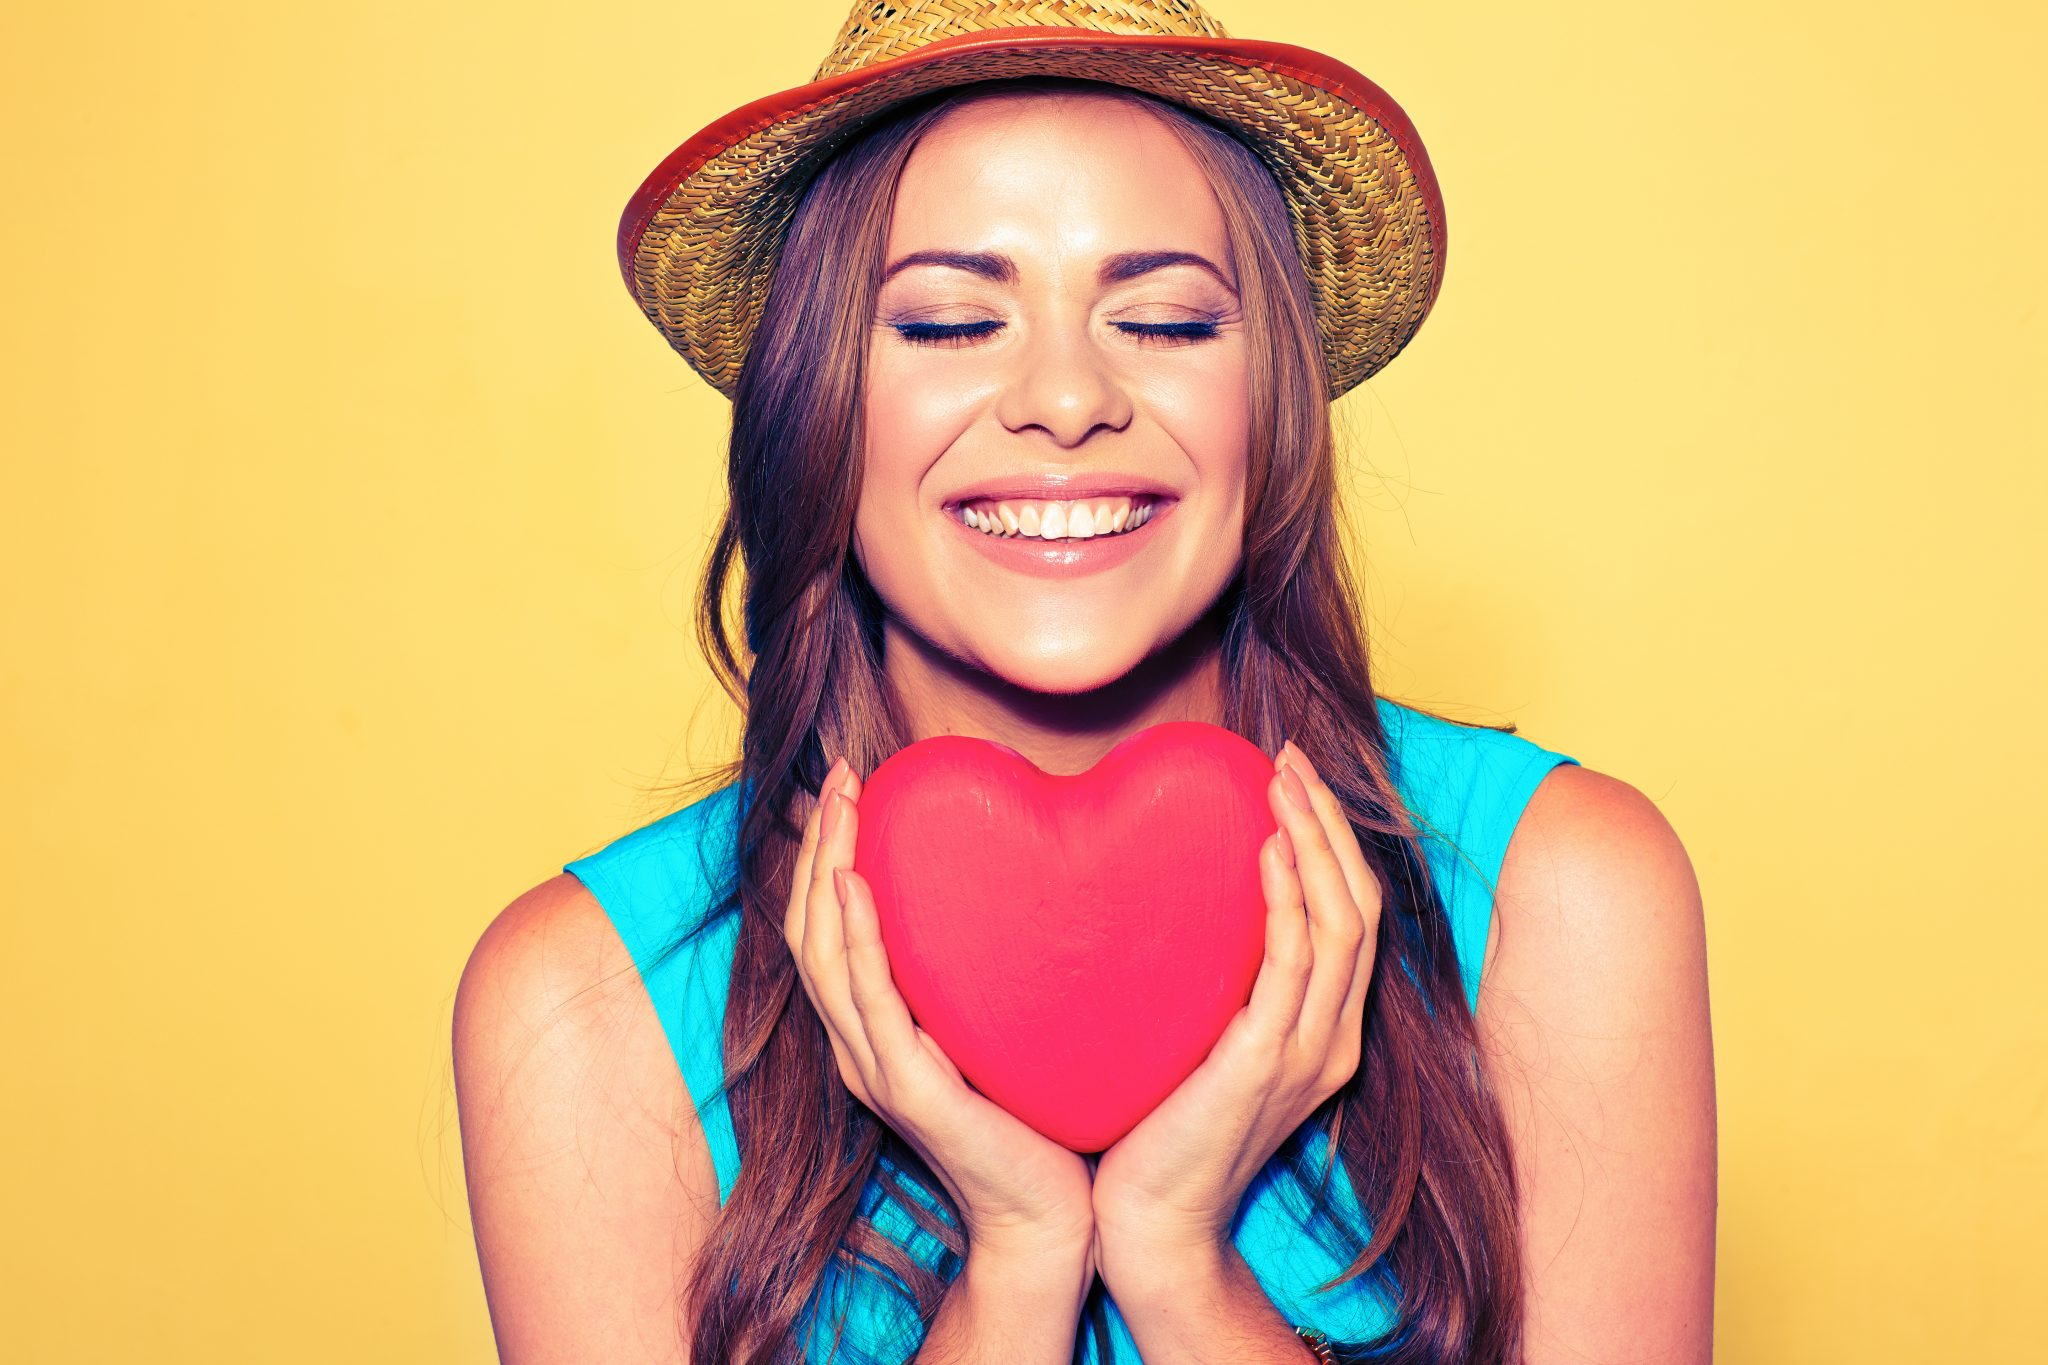 What makes your heart happy?